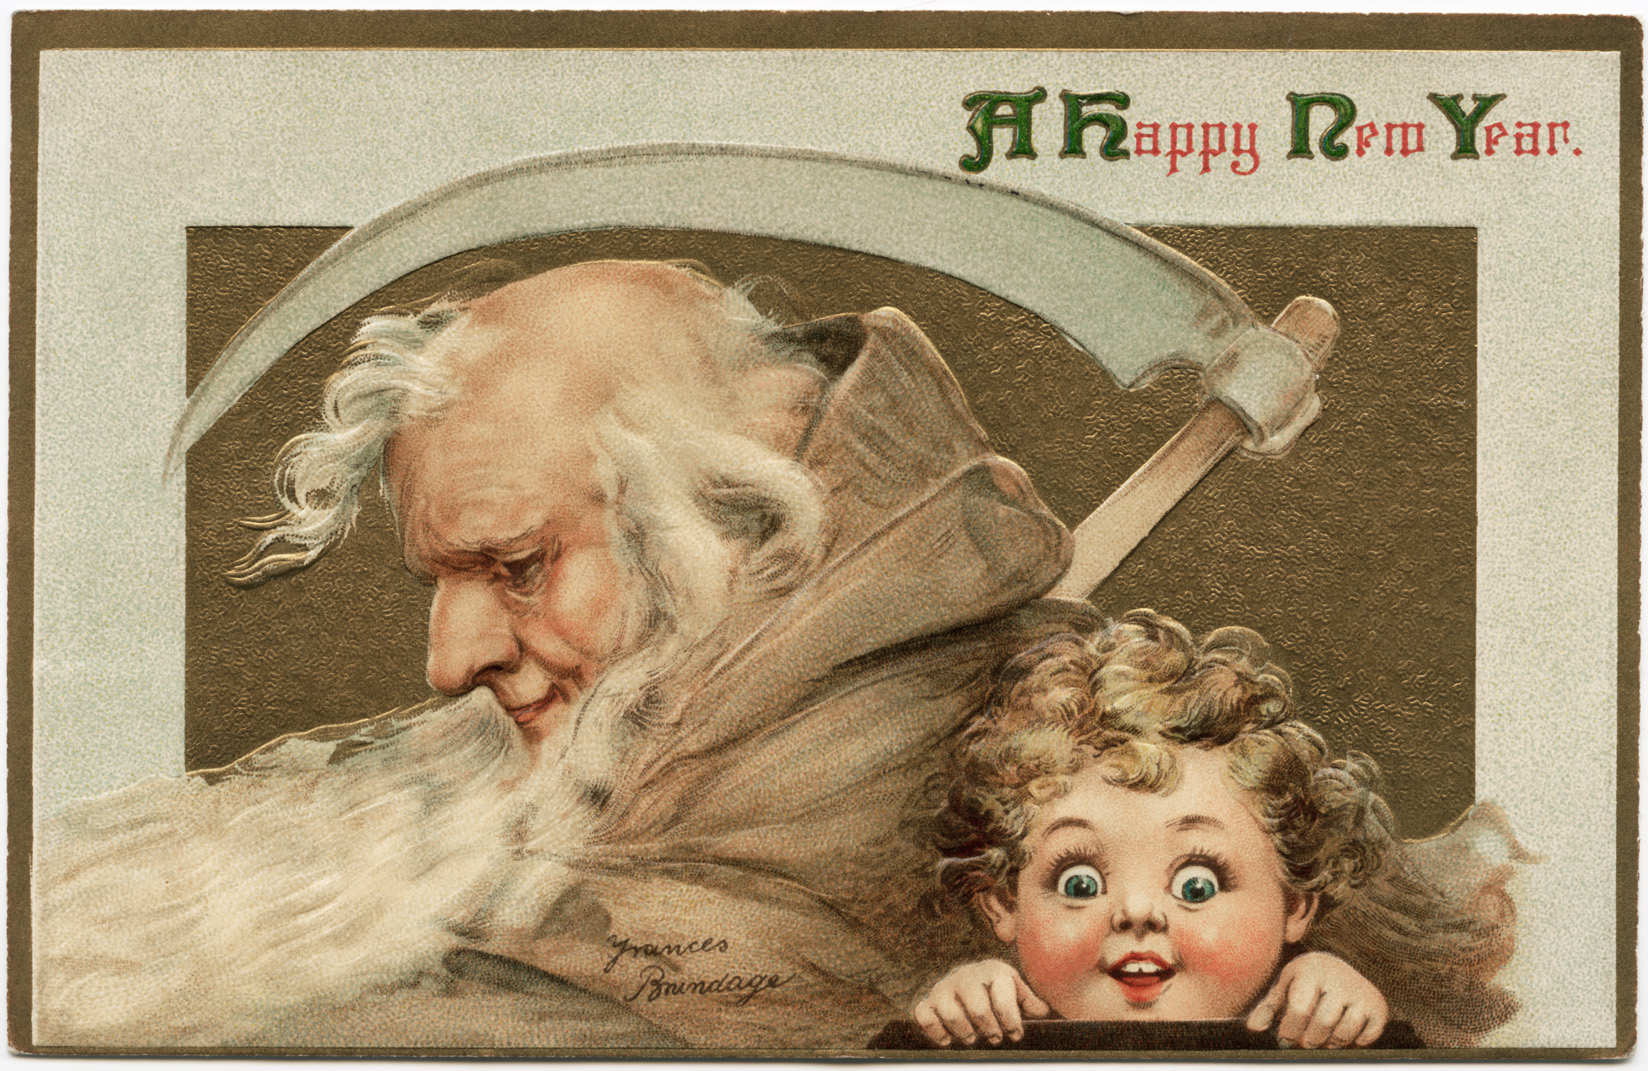 brundage new year postcard, old man young child vintage illustration, happy new year postcard, frances brundage, old fashioned new year wish